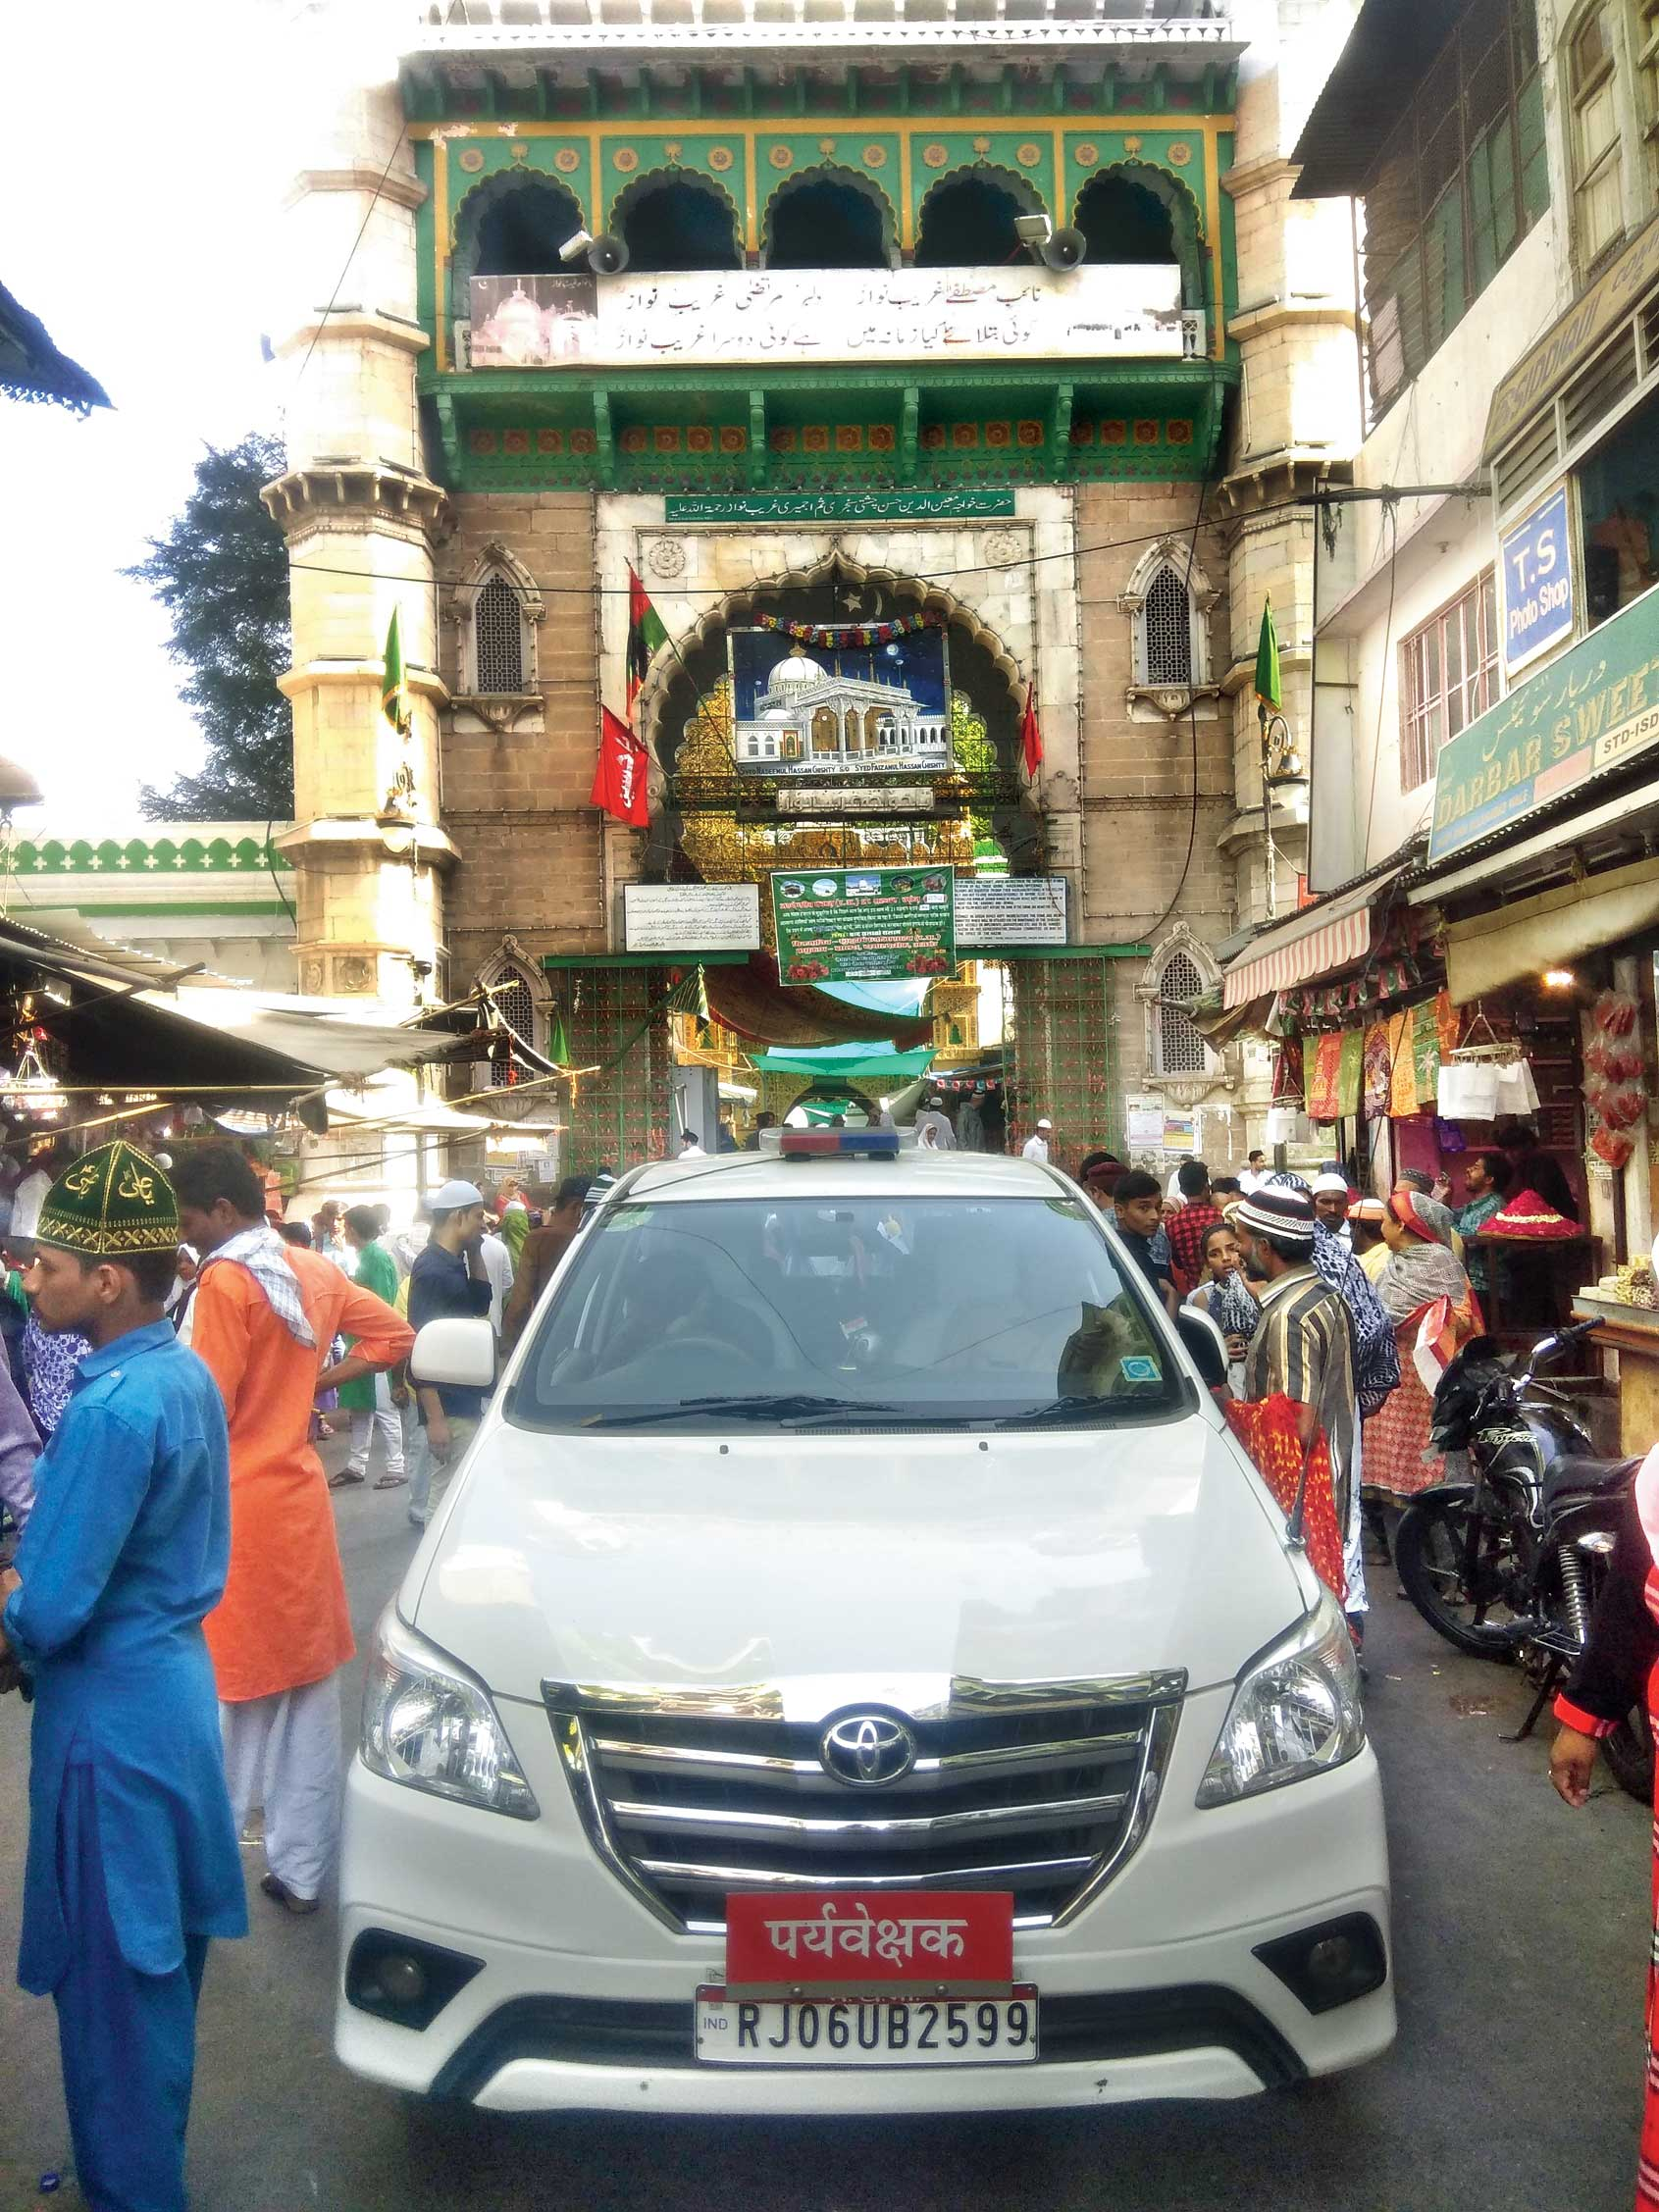 The election observer's SUV parked in the middle of the lane leading to the Ajmer dargah on Friday. The observer went inside the shrine to offer prayer.